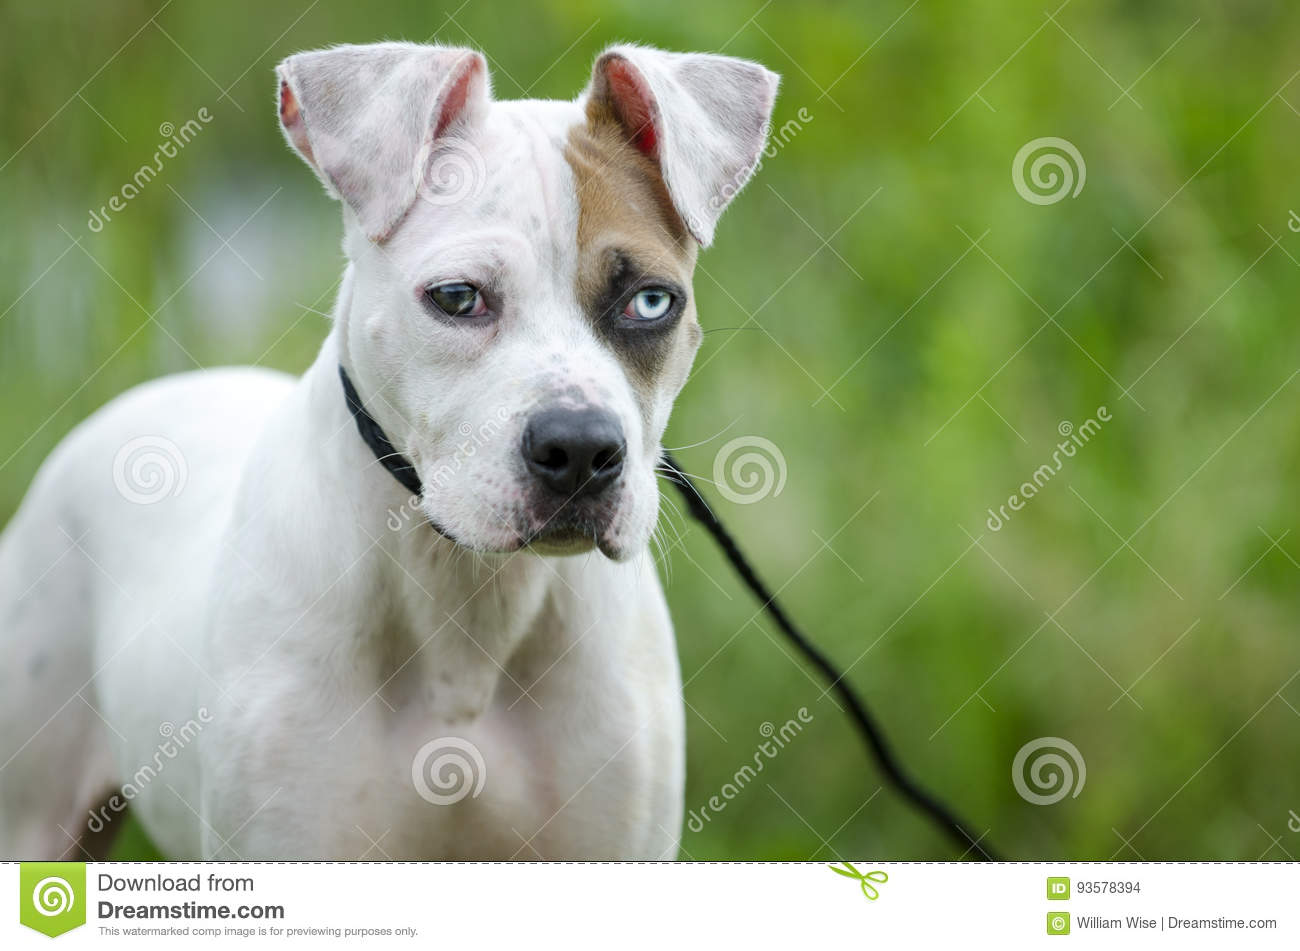 American Bulldog Mixed Breed Puppy Dog Stock Photo - Image of